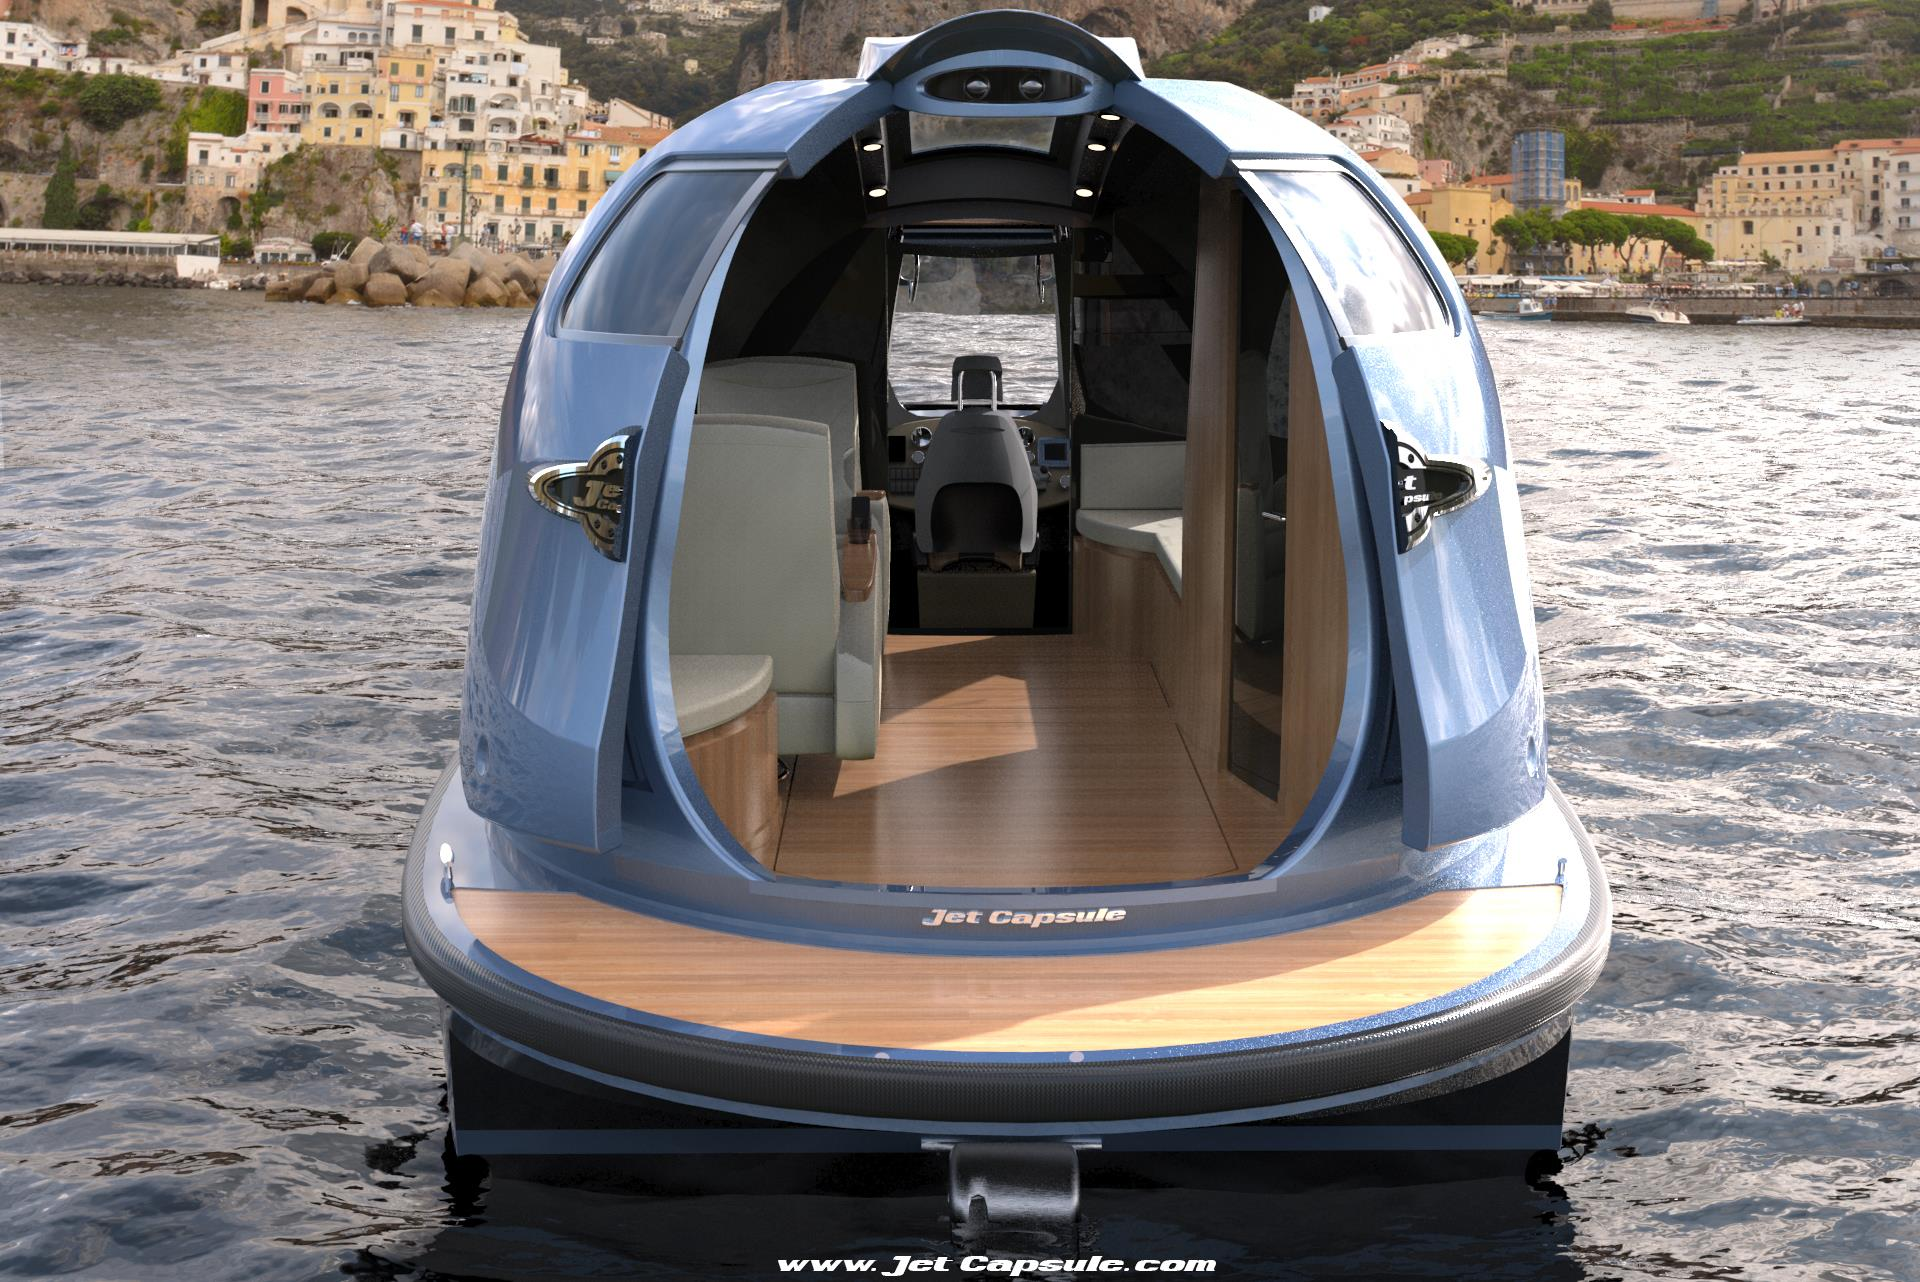 Minimalist house on wheels - Off Grid Floating Home Travel The World In A Jet Capsule